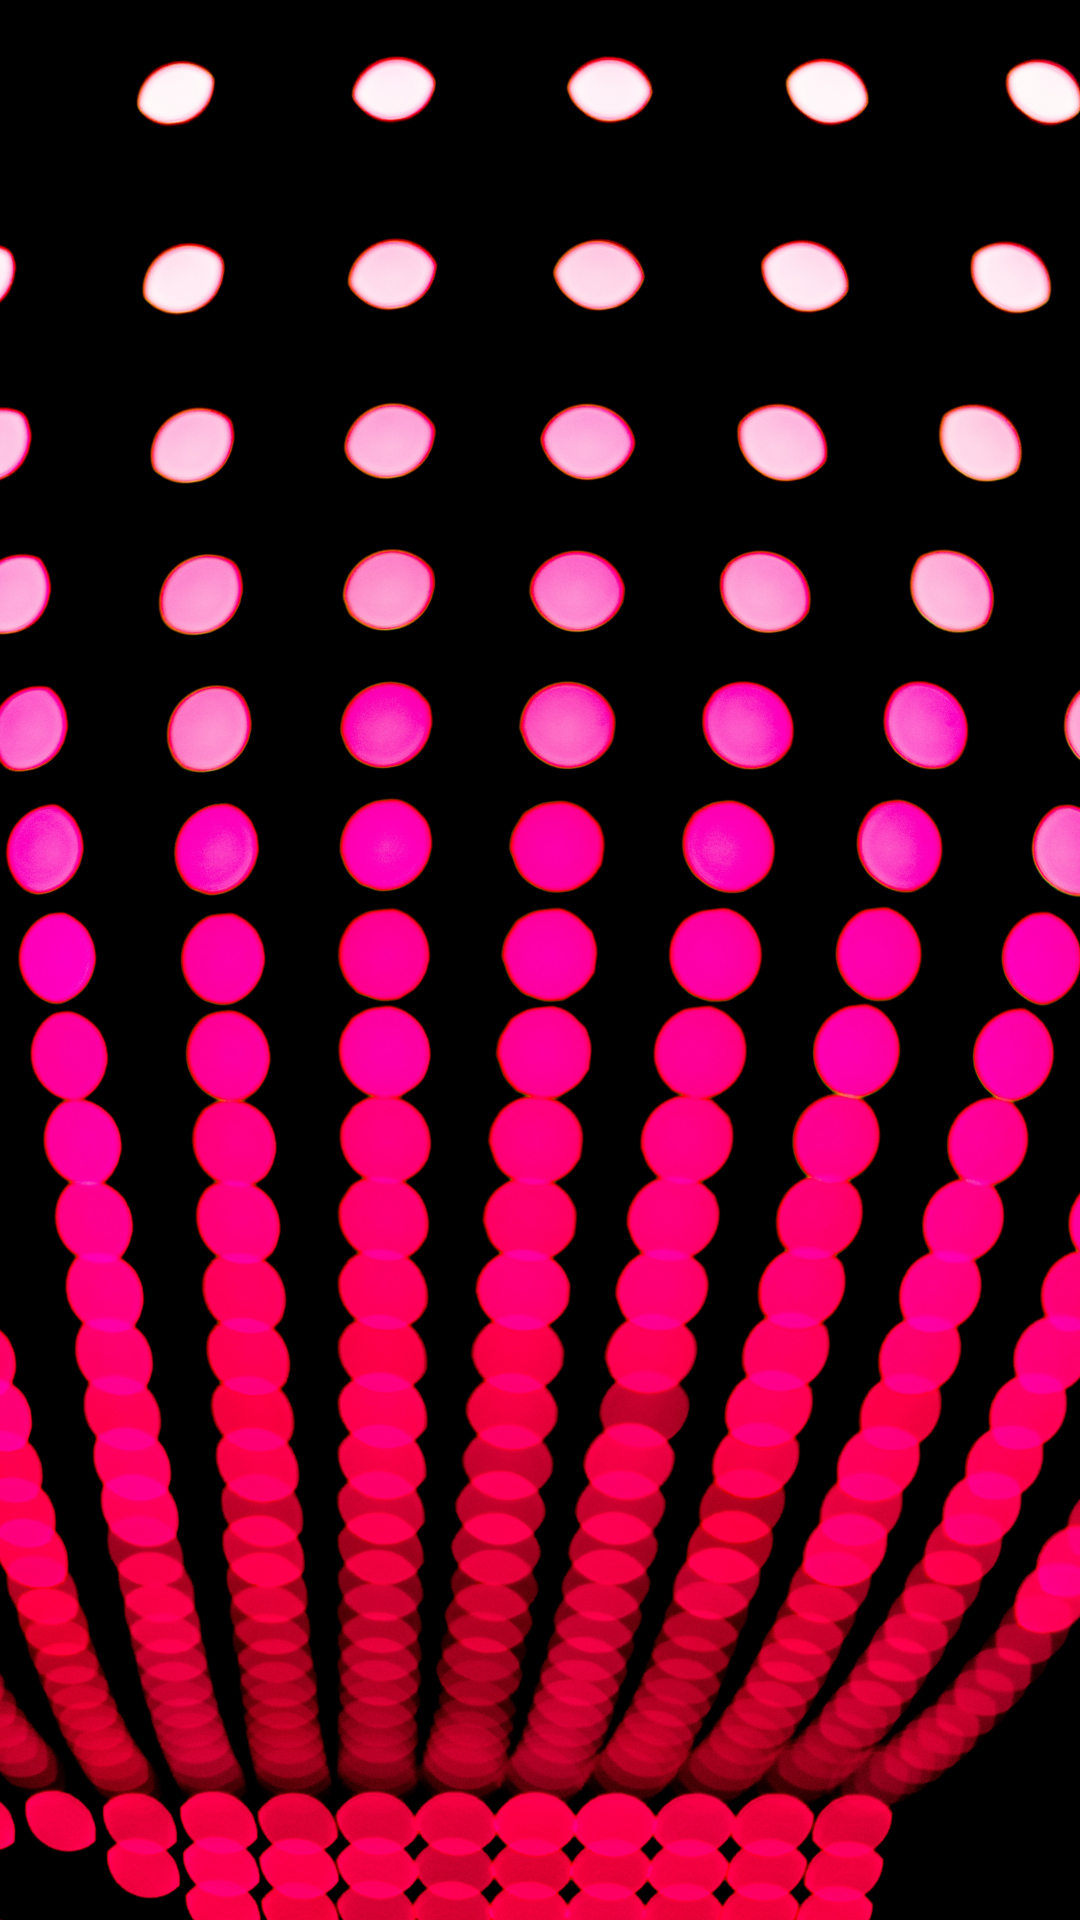 Neon Lights Iphone Wallpaper Idrop News